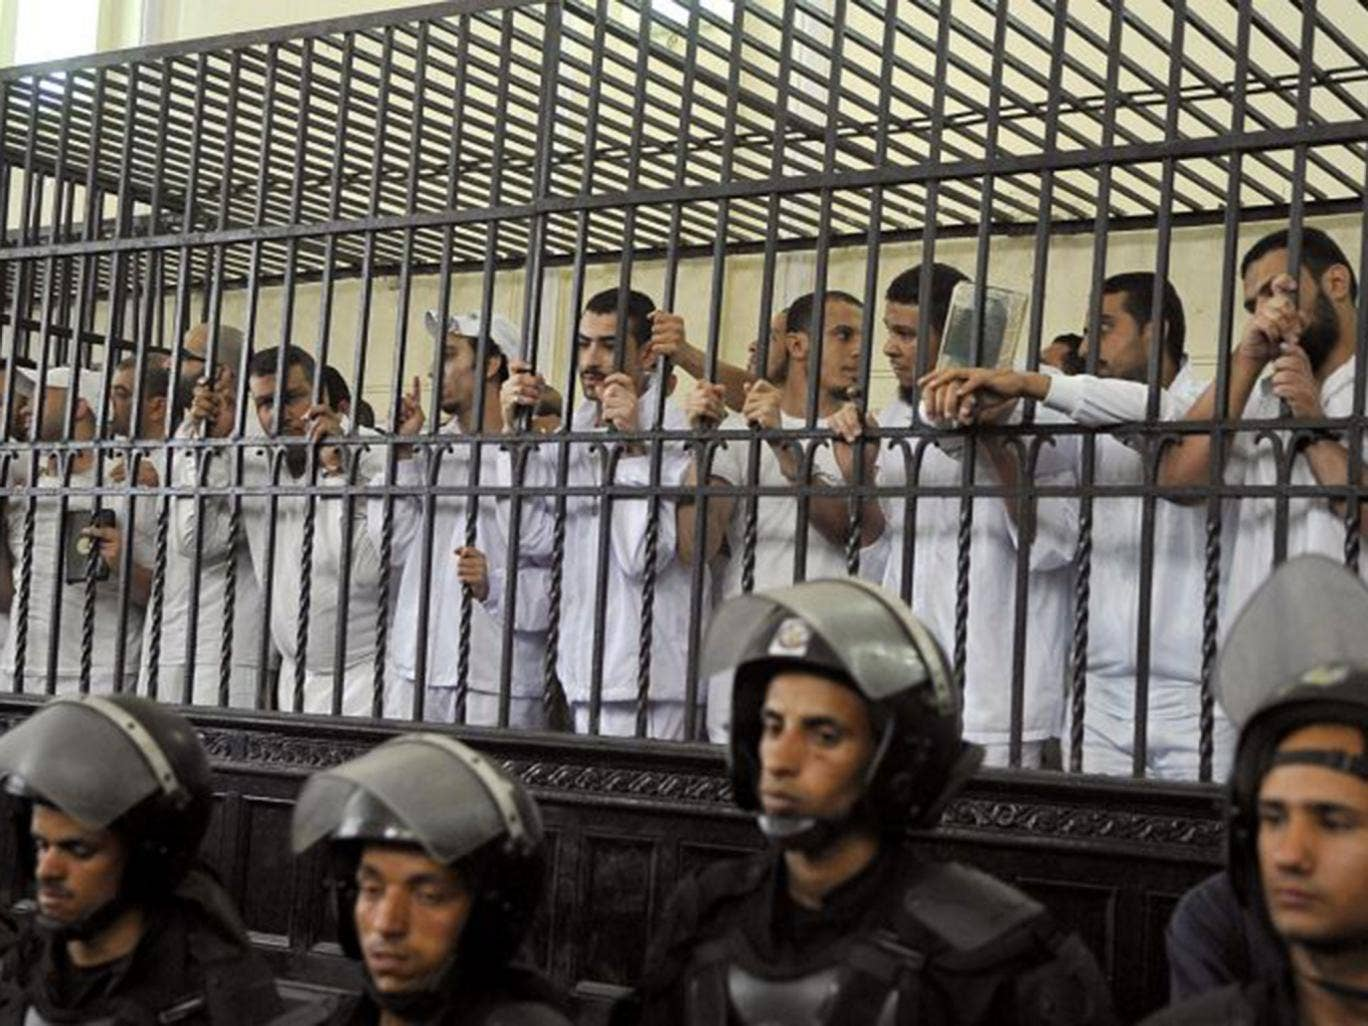 Defendants in court yesterday during their trial over violence in Alexandria last year following the ousting of Mohamed Morsi. Ahmed Diini was arrested shortly after Mr Morsi's Muslim Brotherhood was deposed